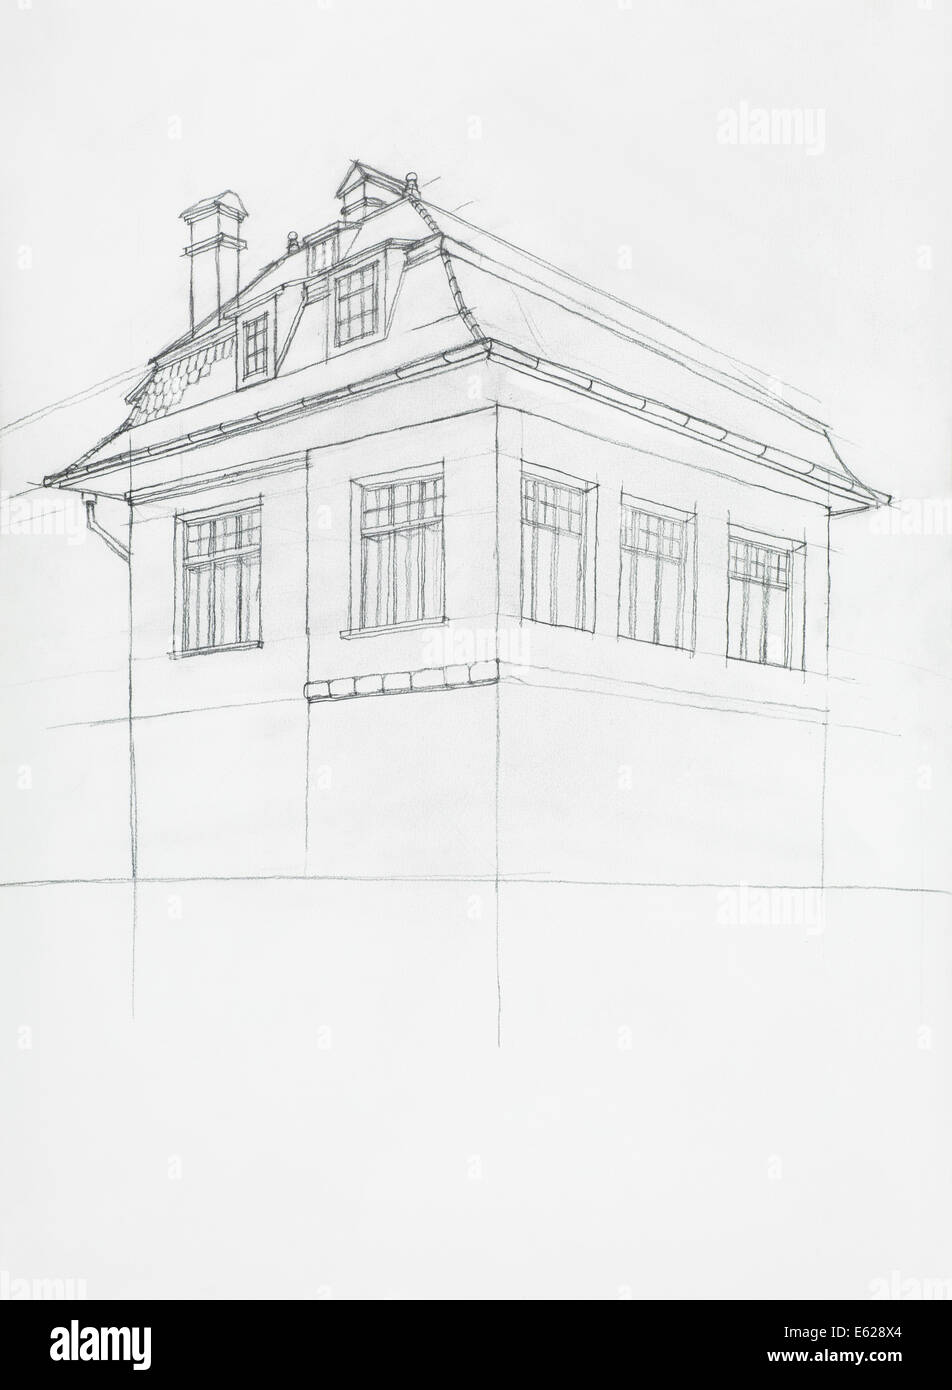 Architectural Sketch Of House Perspective Construction Hand Drawn